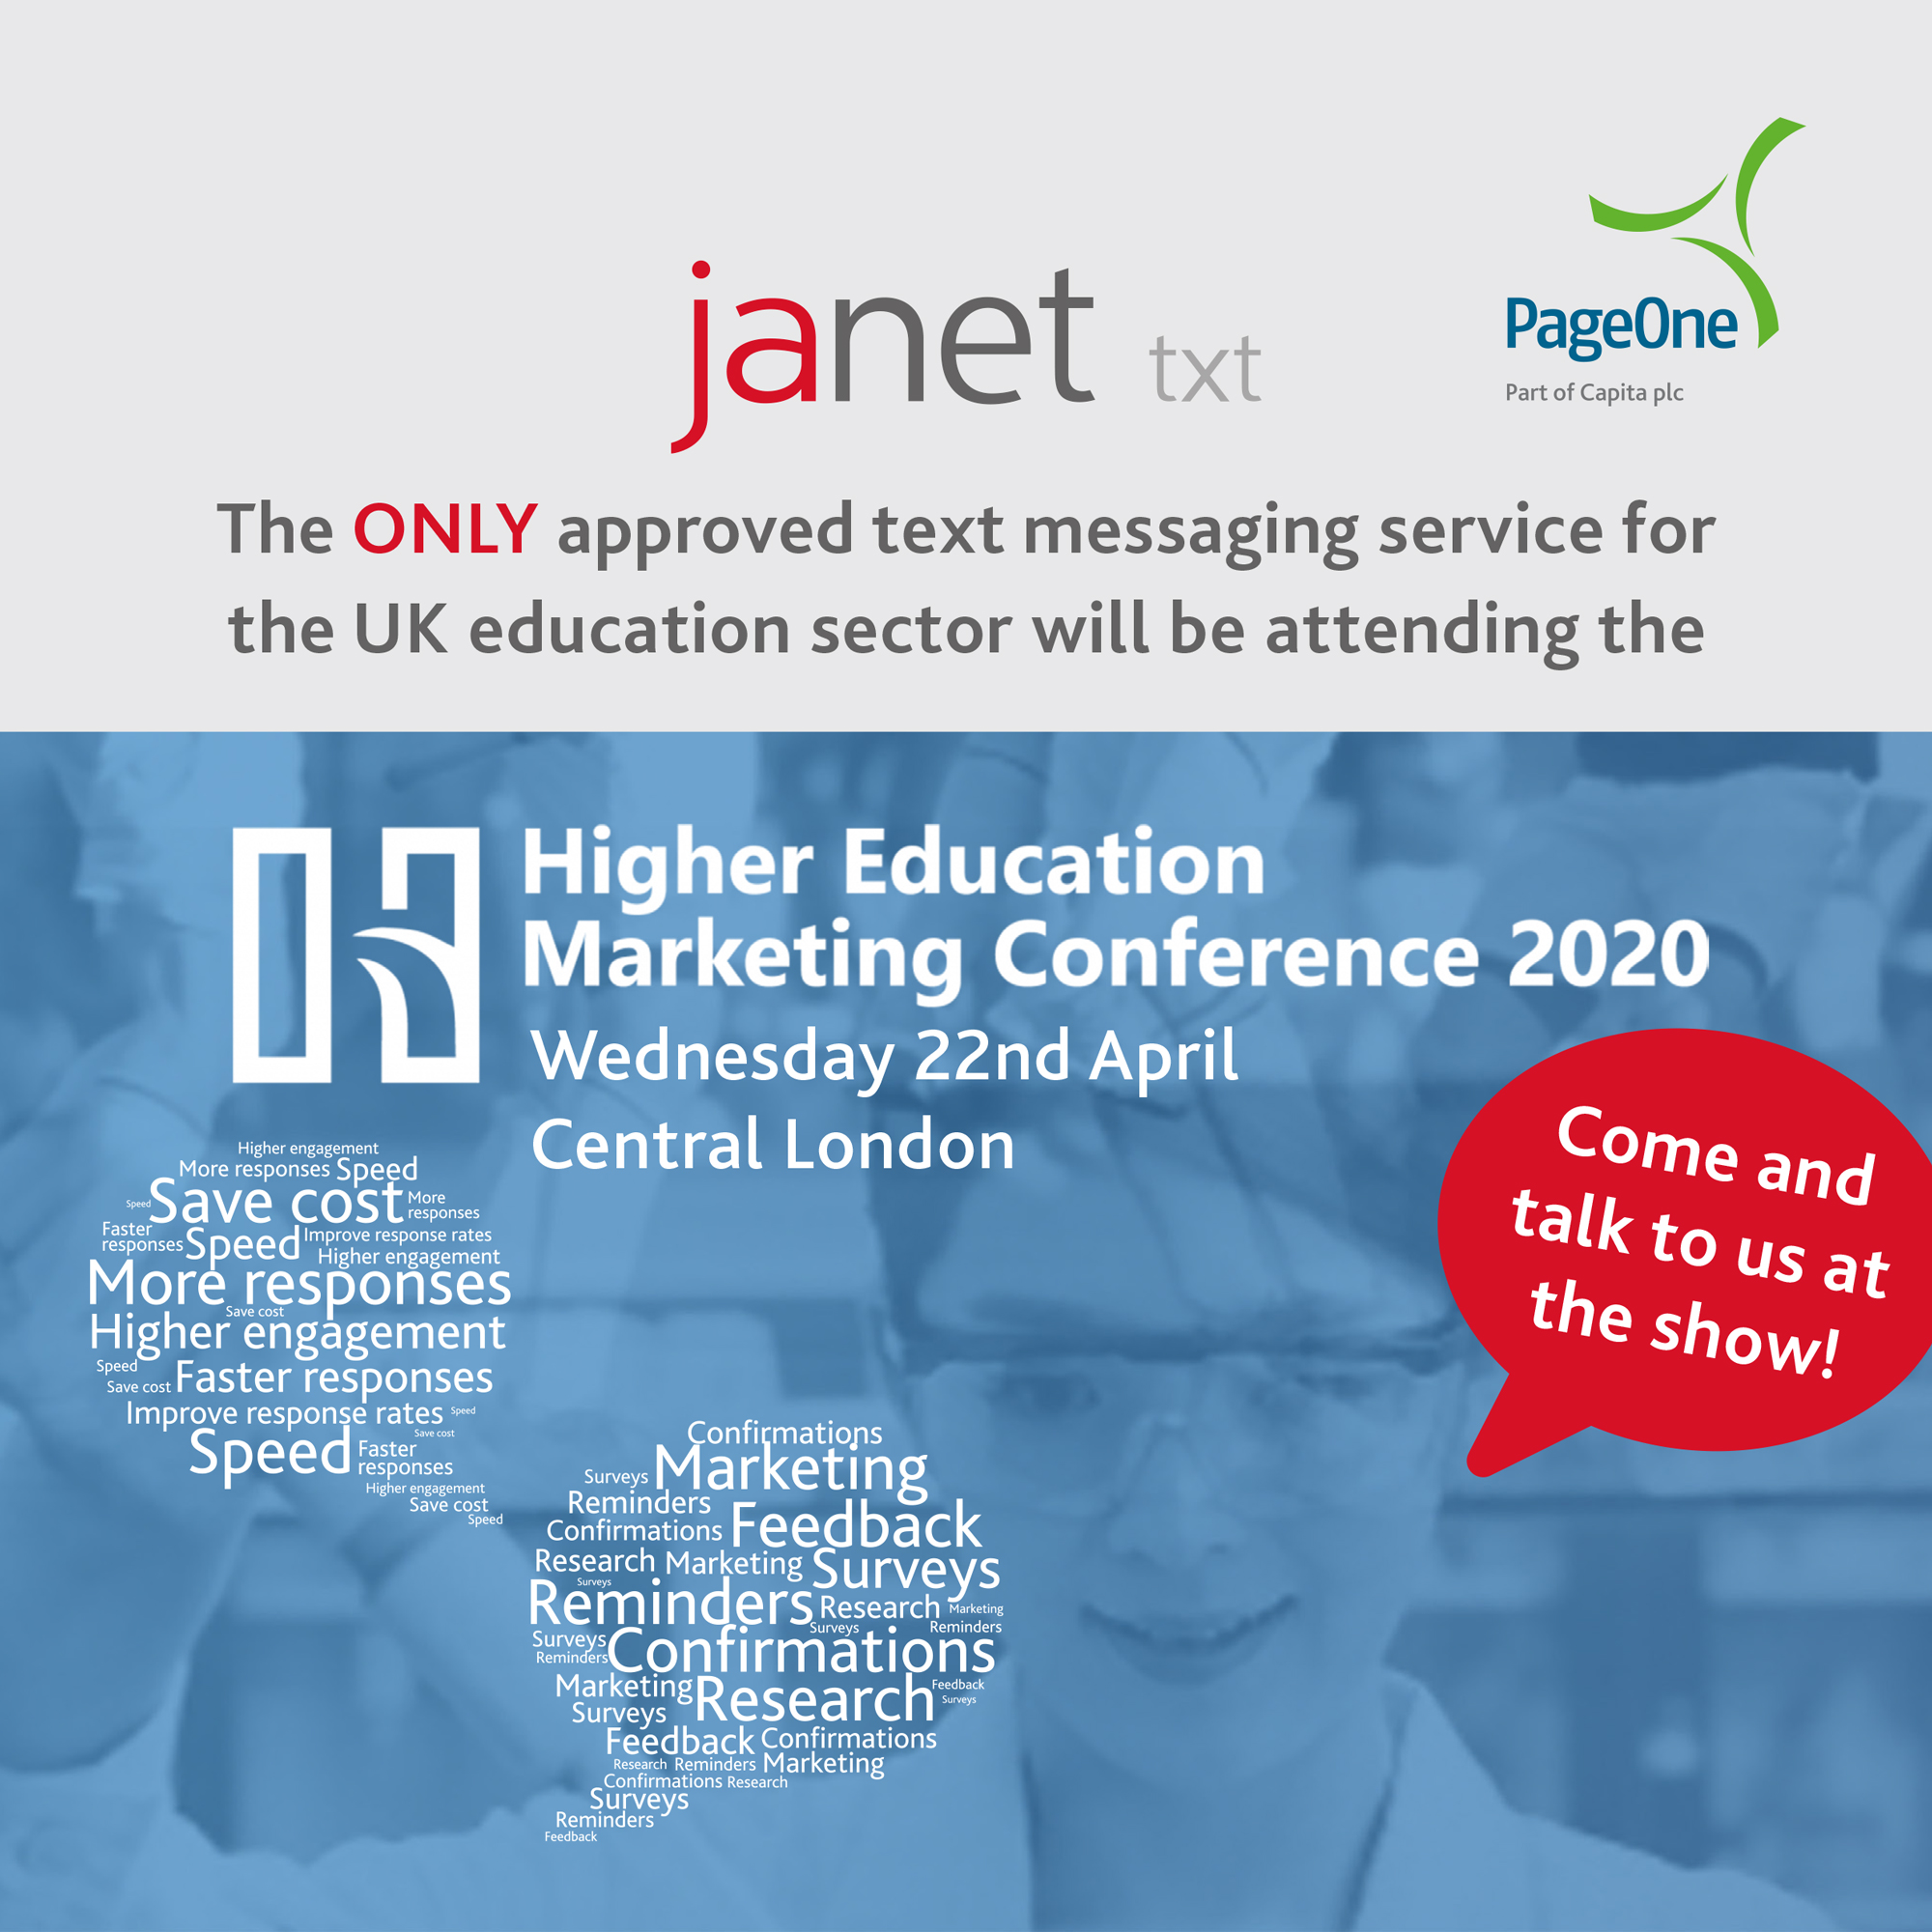 The Higher Education Marketing Conference 2020